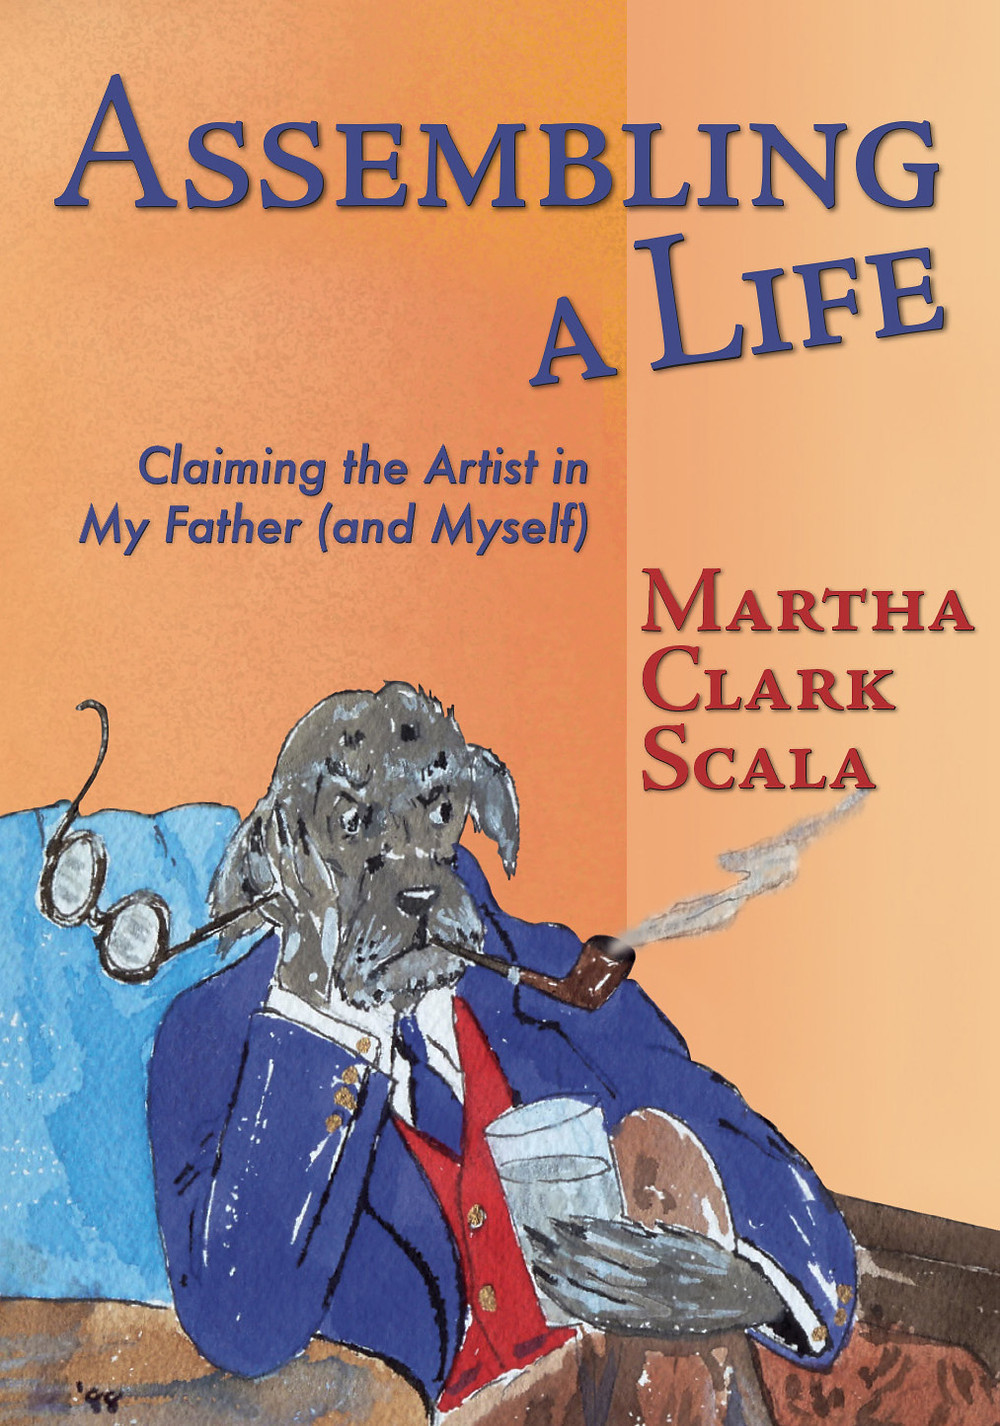 Front Cover of Assembling a Life by Martha Clark Scala